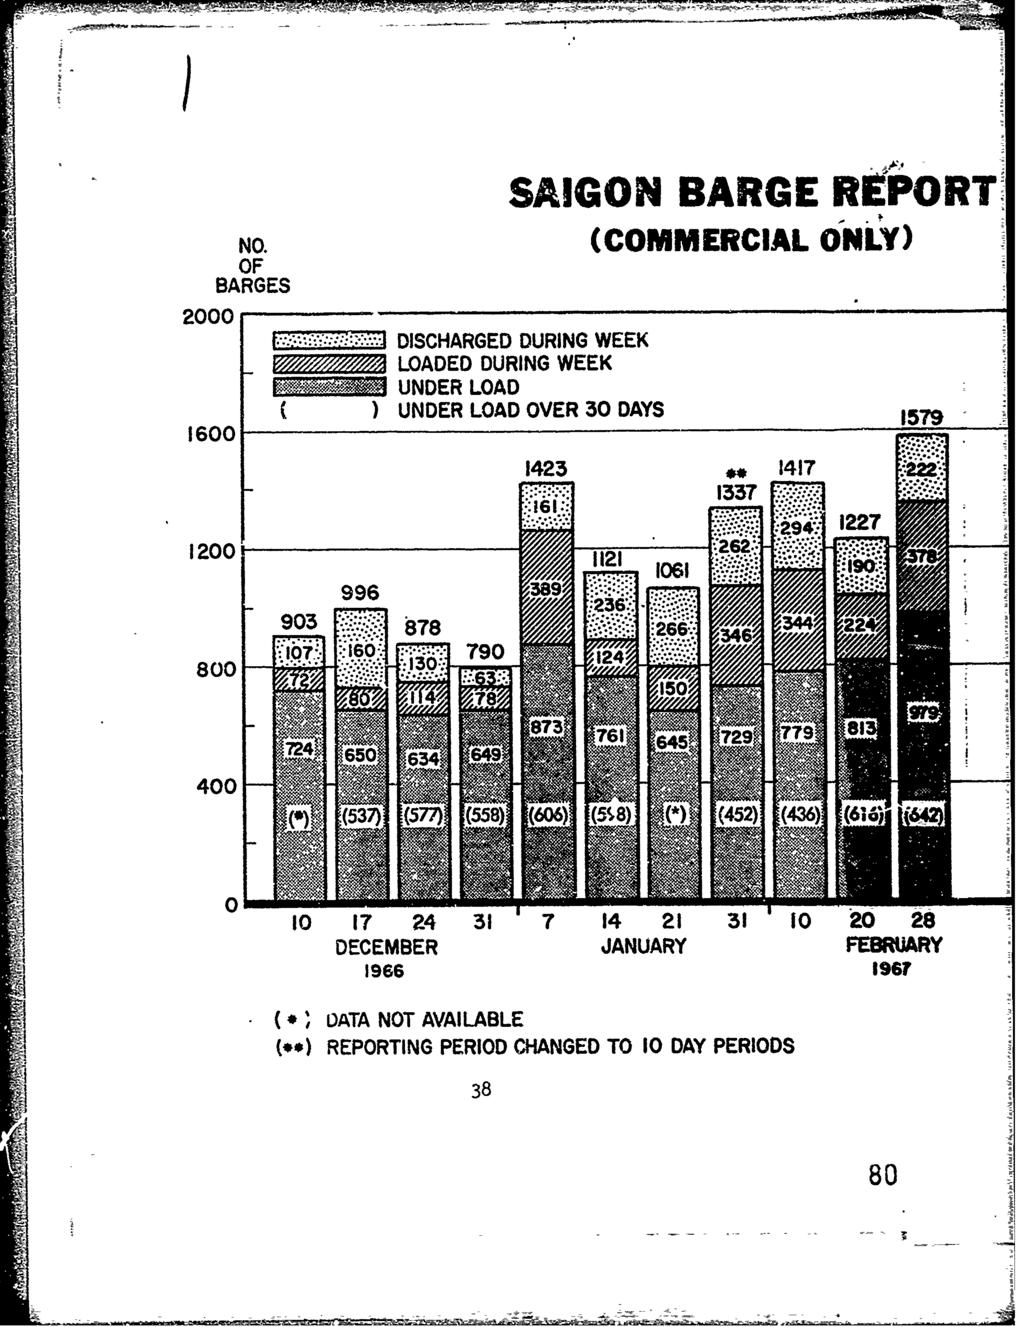 "2000 NO. OF BARGES 1600 SAIGON BARGE REPORT. (COMMERCIAL ONLY). DISCHARGED DURING WEEK LOADED DURING WEEK UNDER LOAD ( ) UNDER LOAD OVER 30 DAYS 1579 1423.. 1417 1337 :~... 122T 120011 "" 96 S~~1061 9 6."